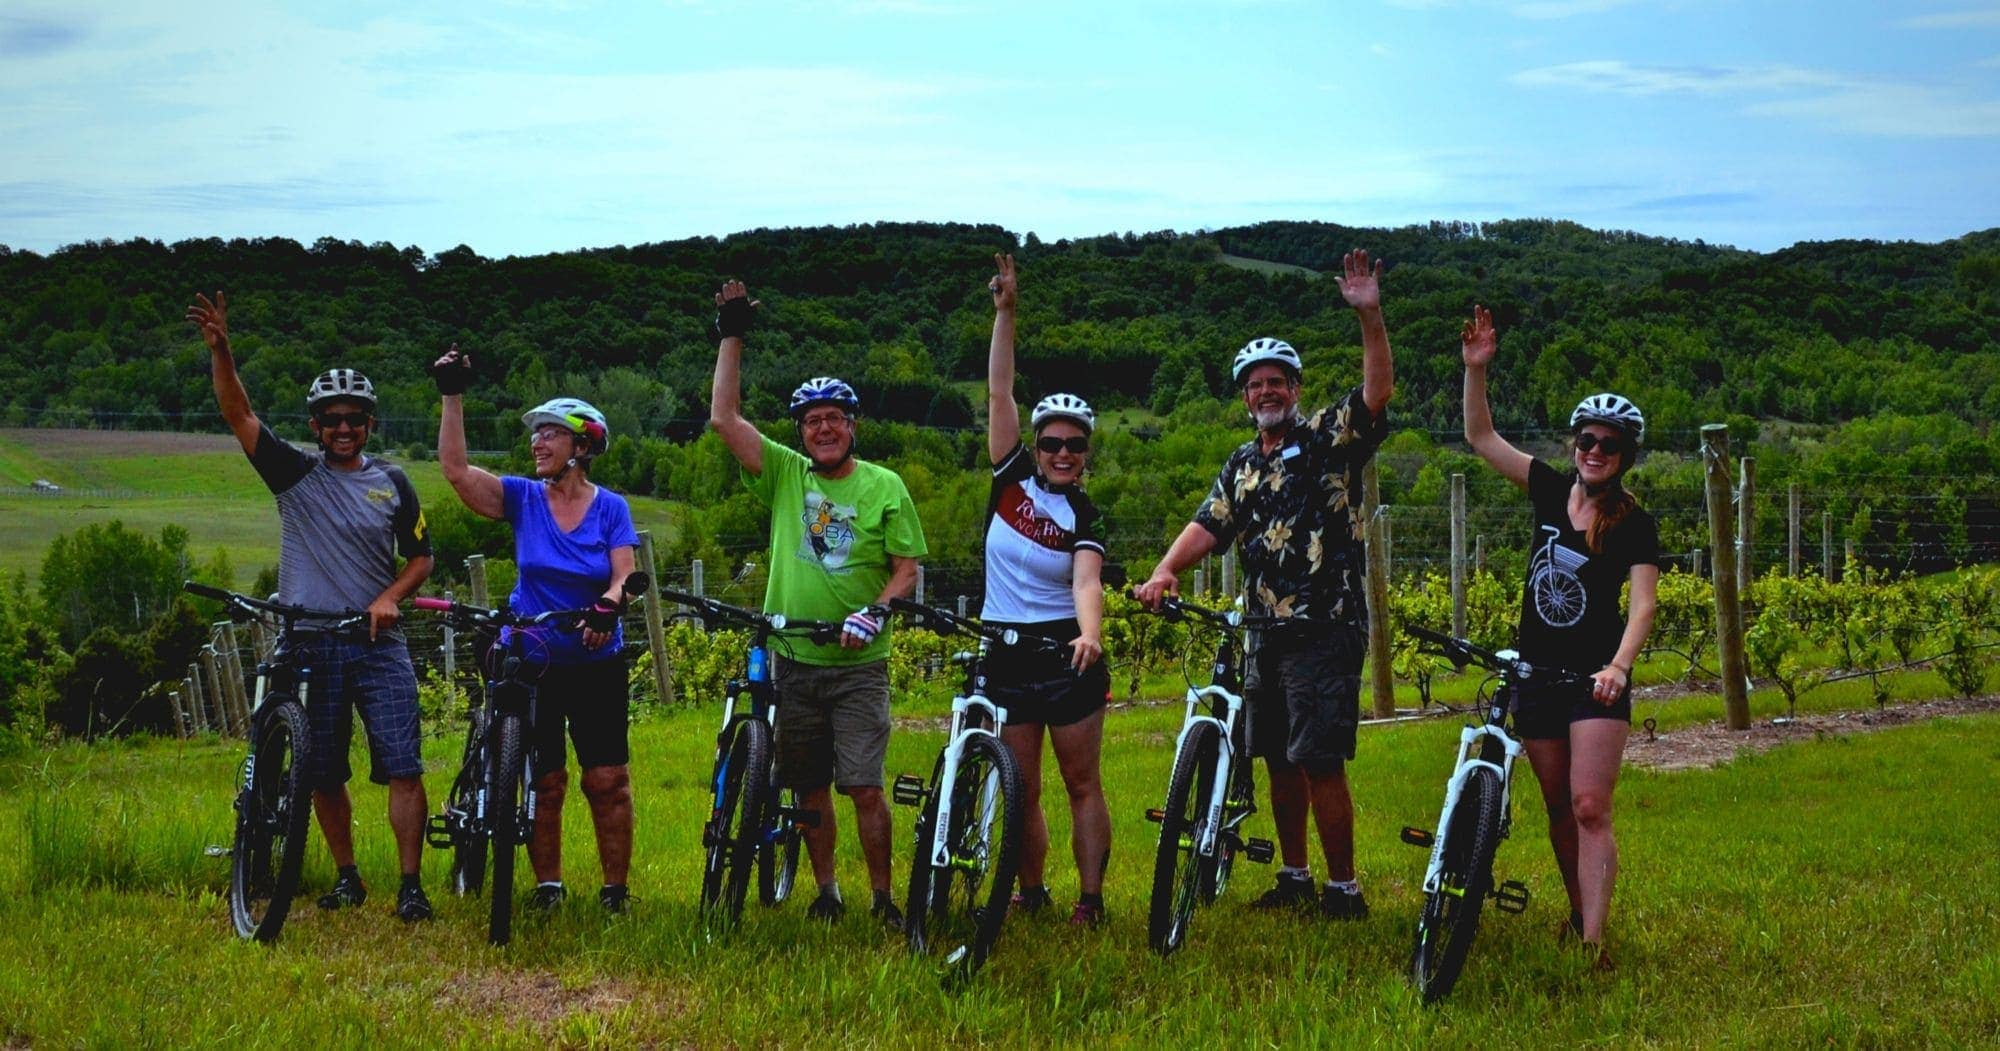 grand traverse bike tours cycle the vineyards tour. Black Bedroom Furniture Sets. Home Design Ideas